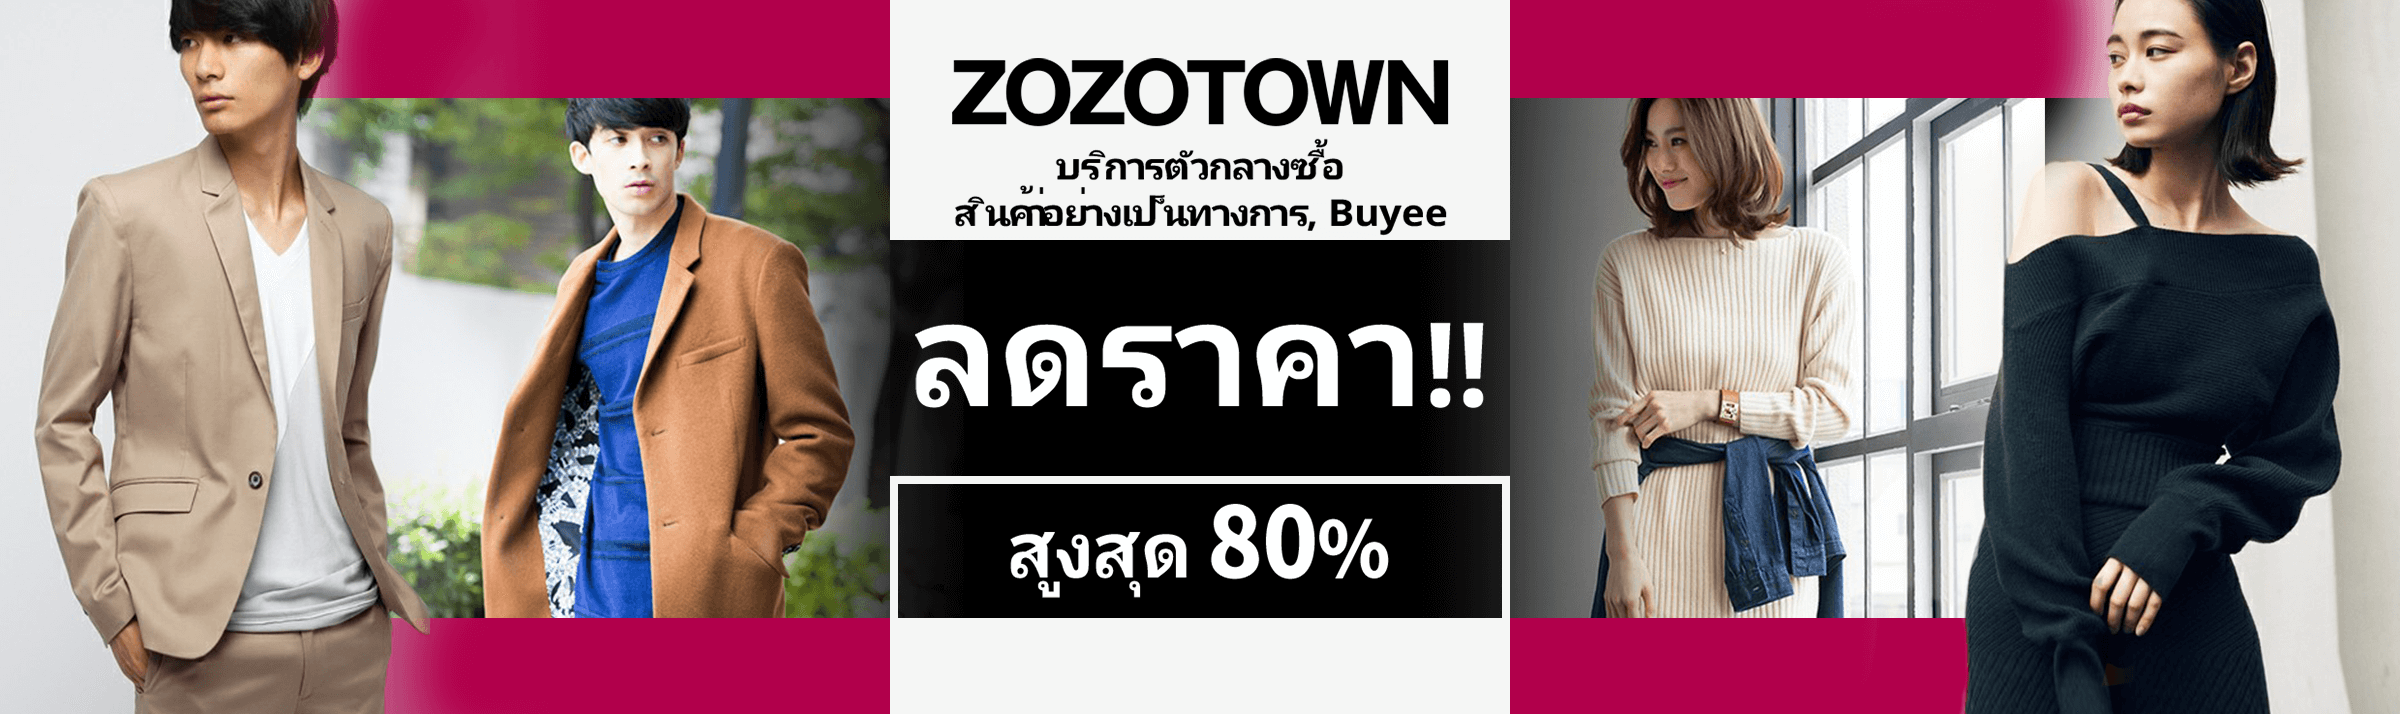 ZOZOTOWN Now on Special Sale!